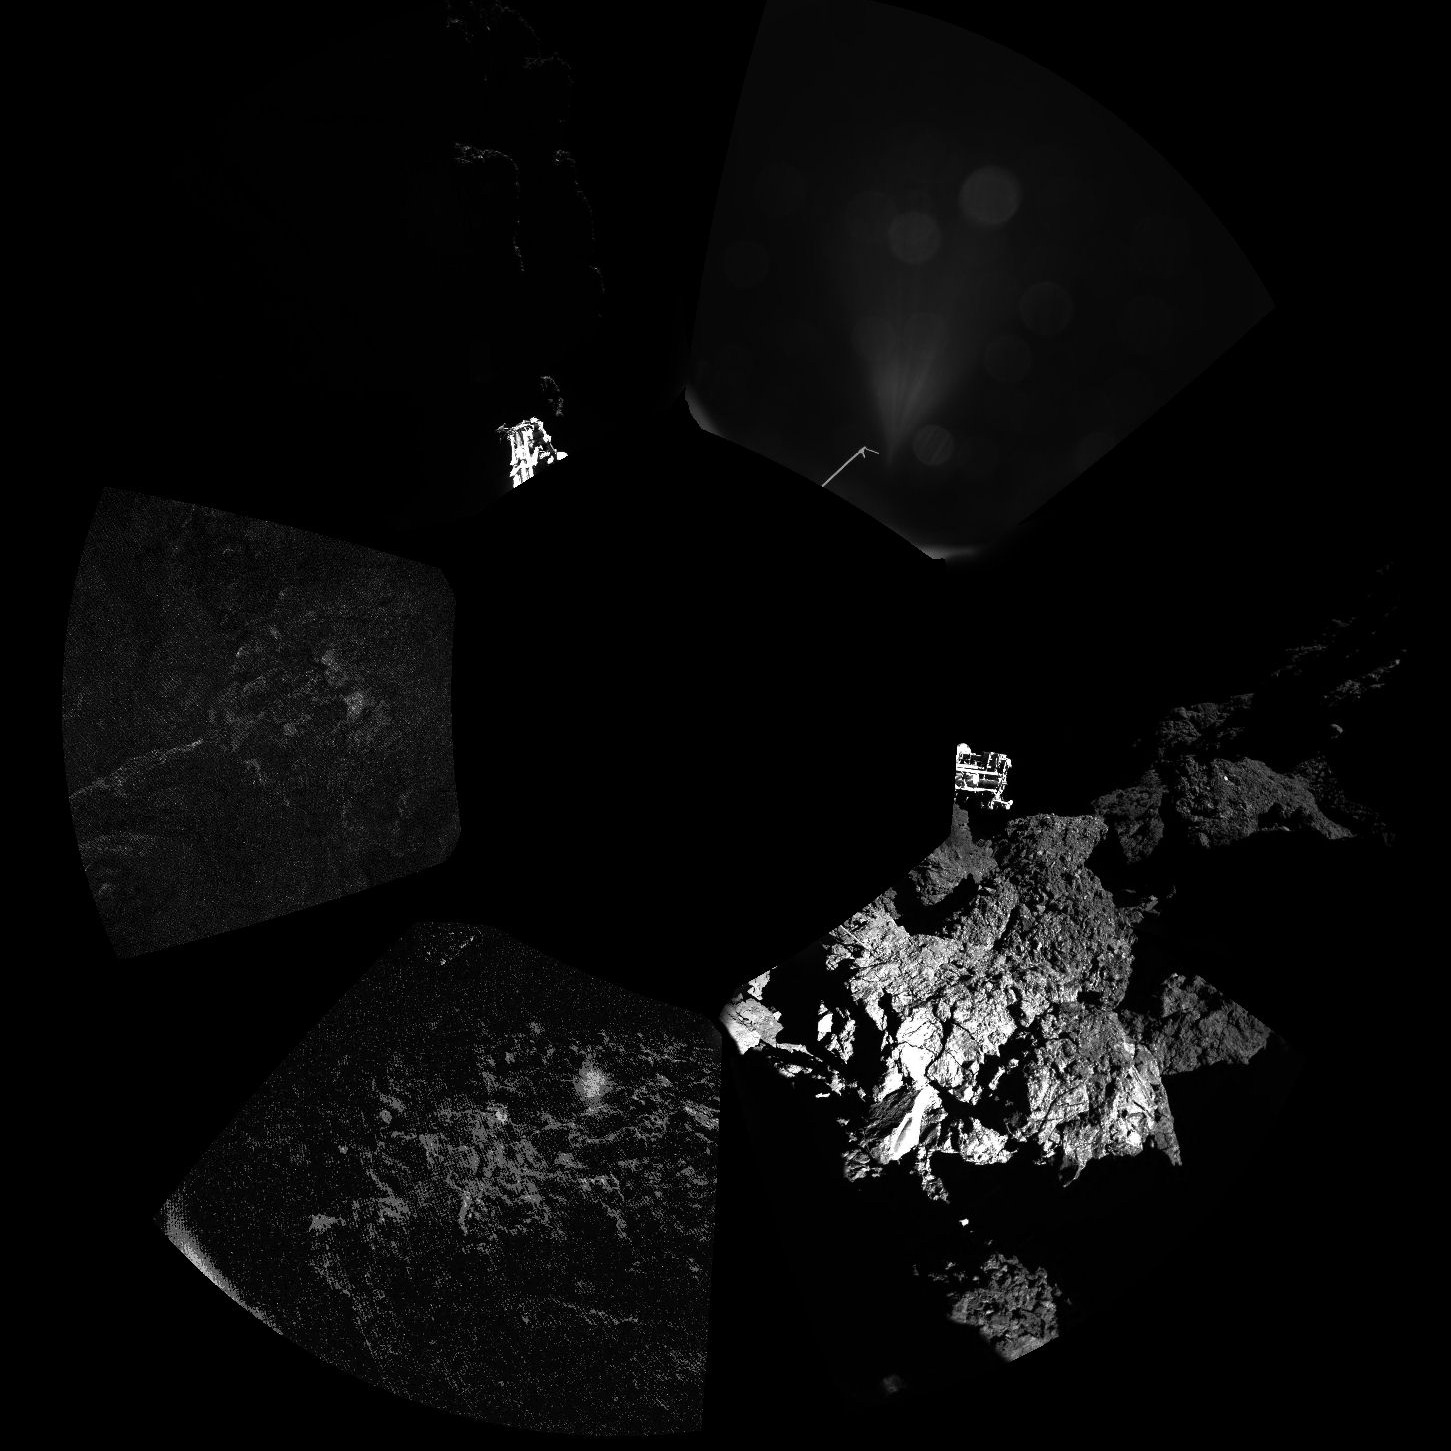 First panoramic view of the comet